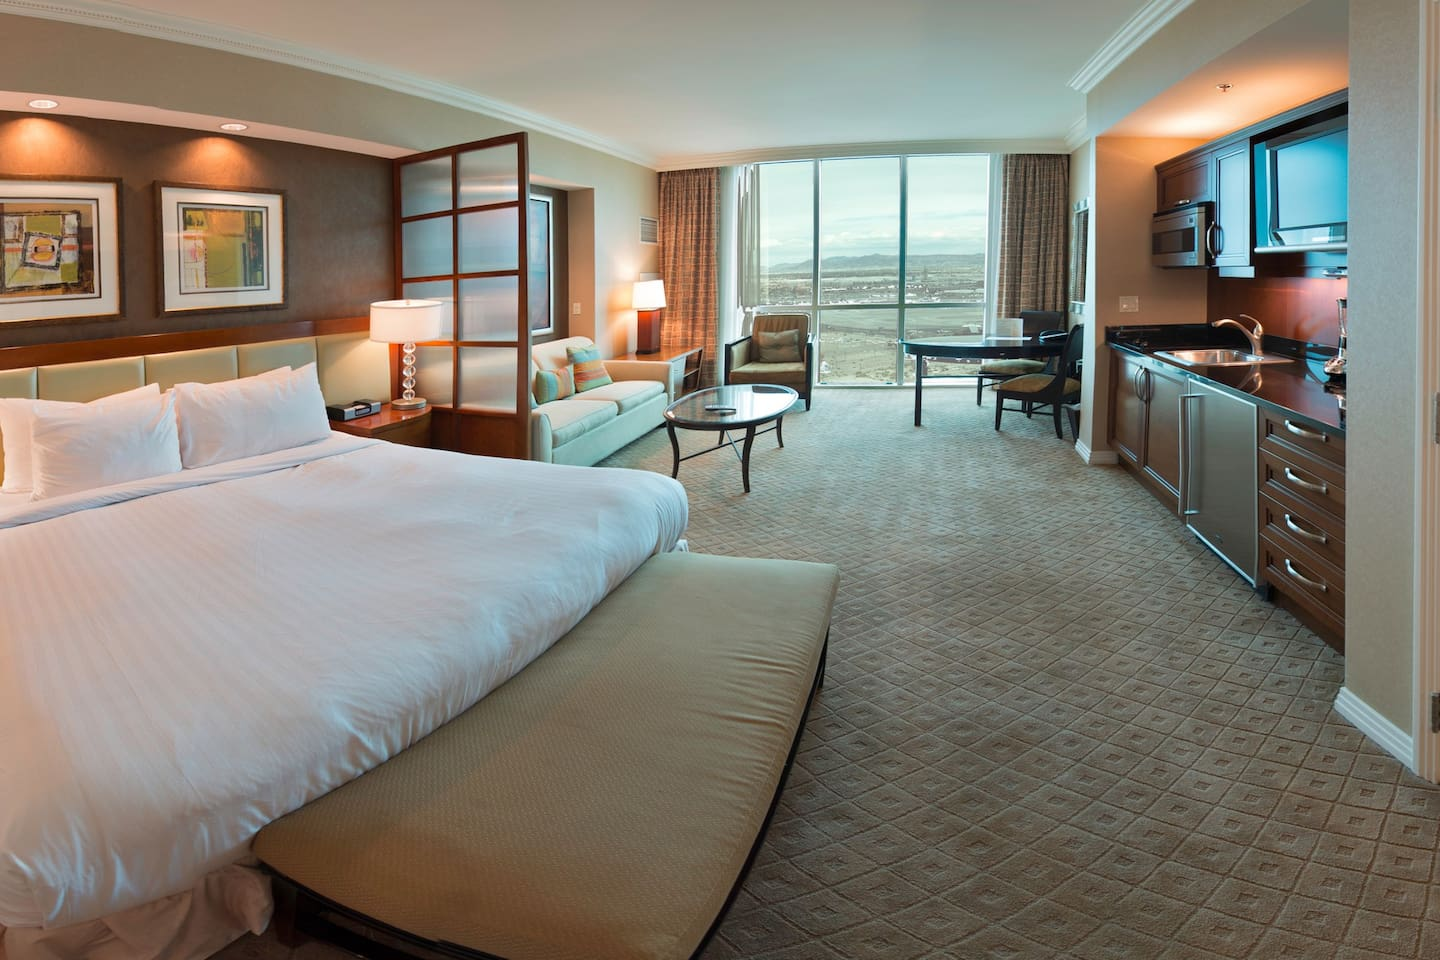 Mgm Signature 2 Bedroom Suite The Signature At Mgm Grand High Floor Suite Condominiums For